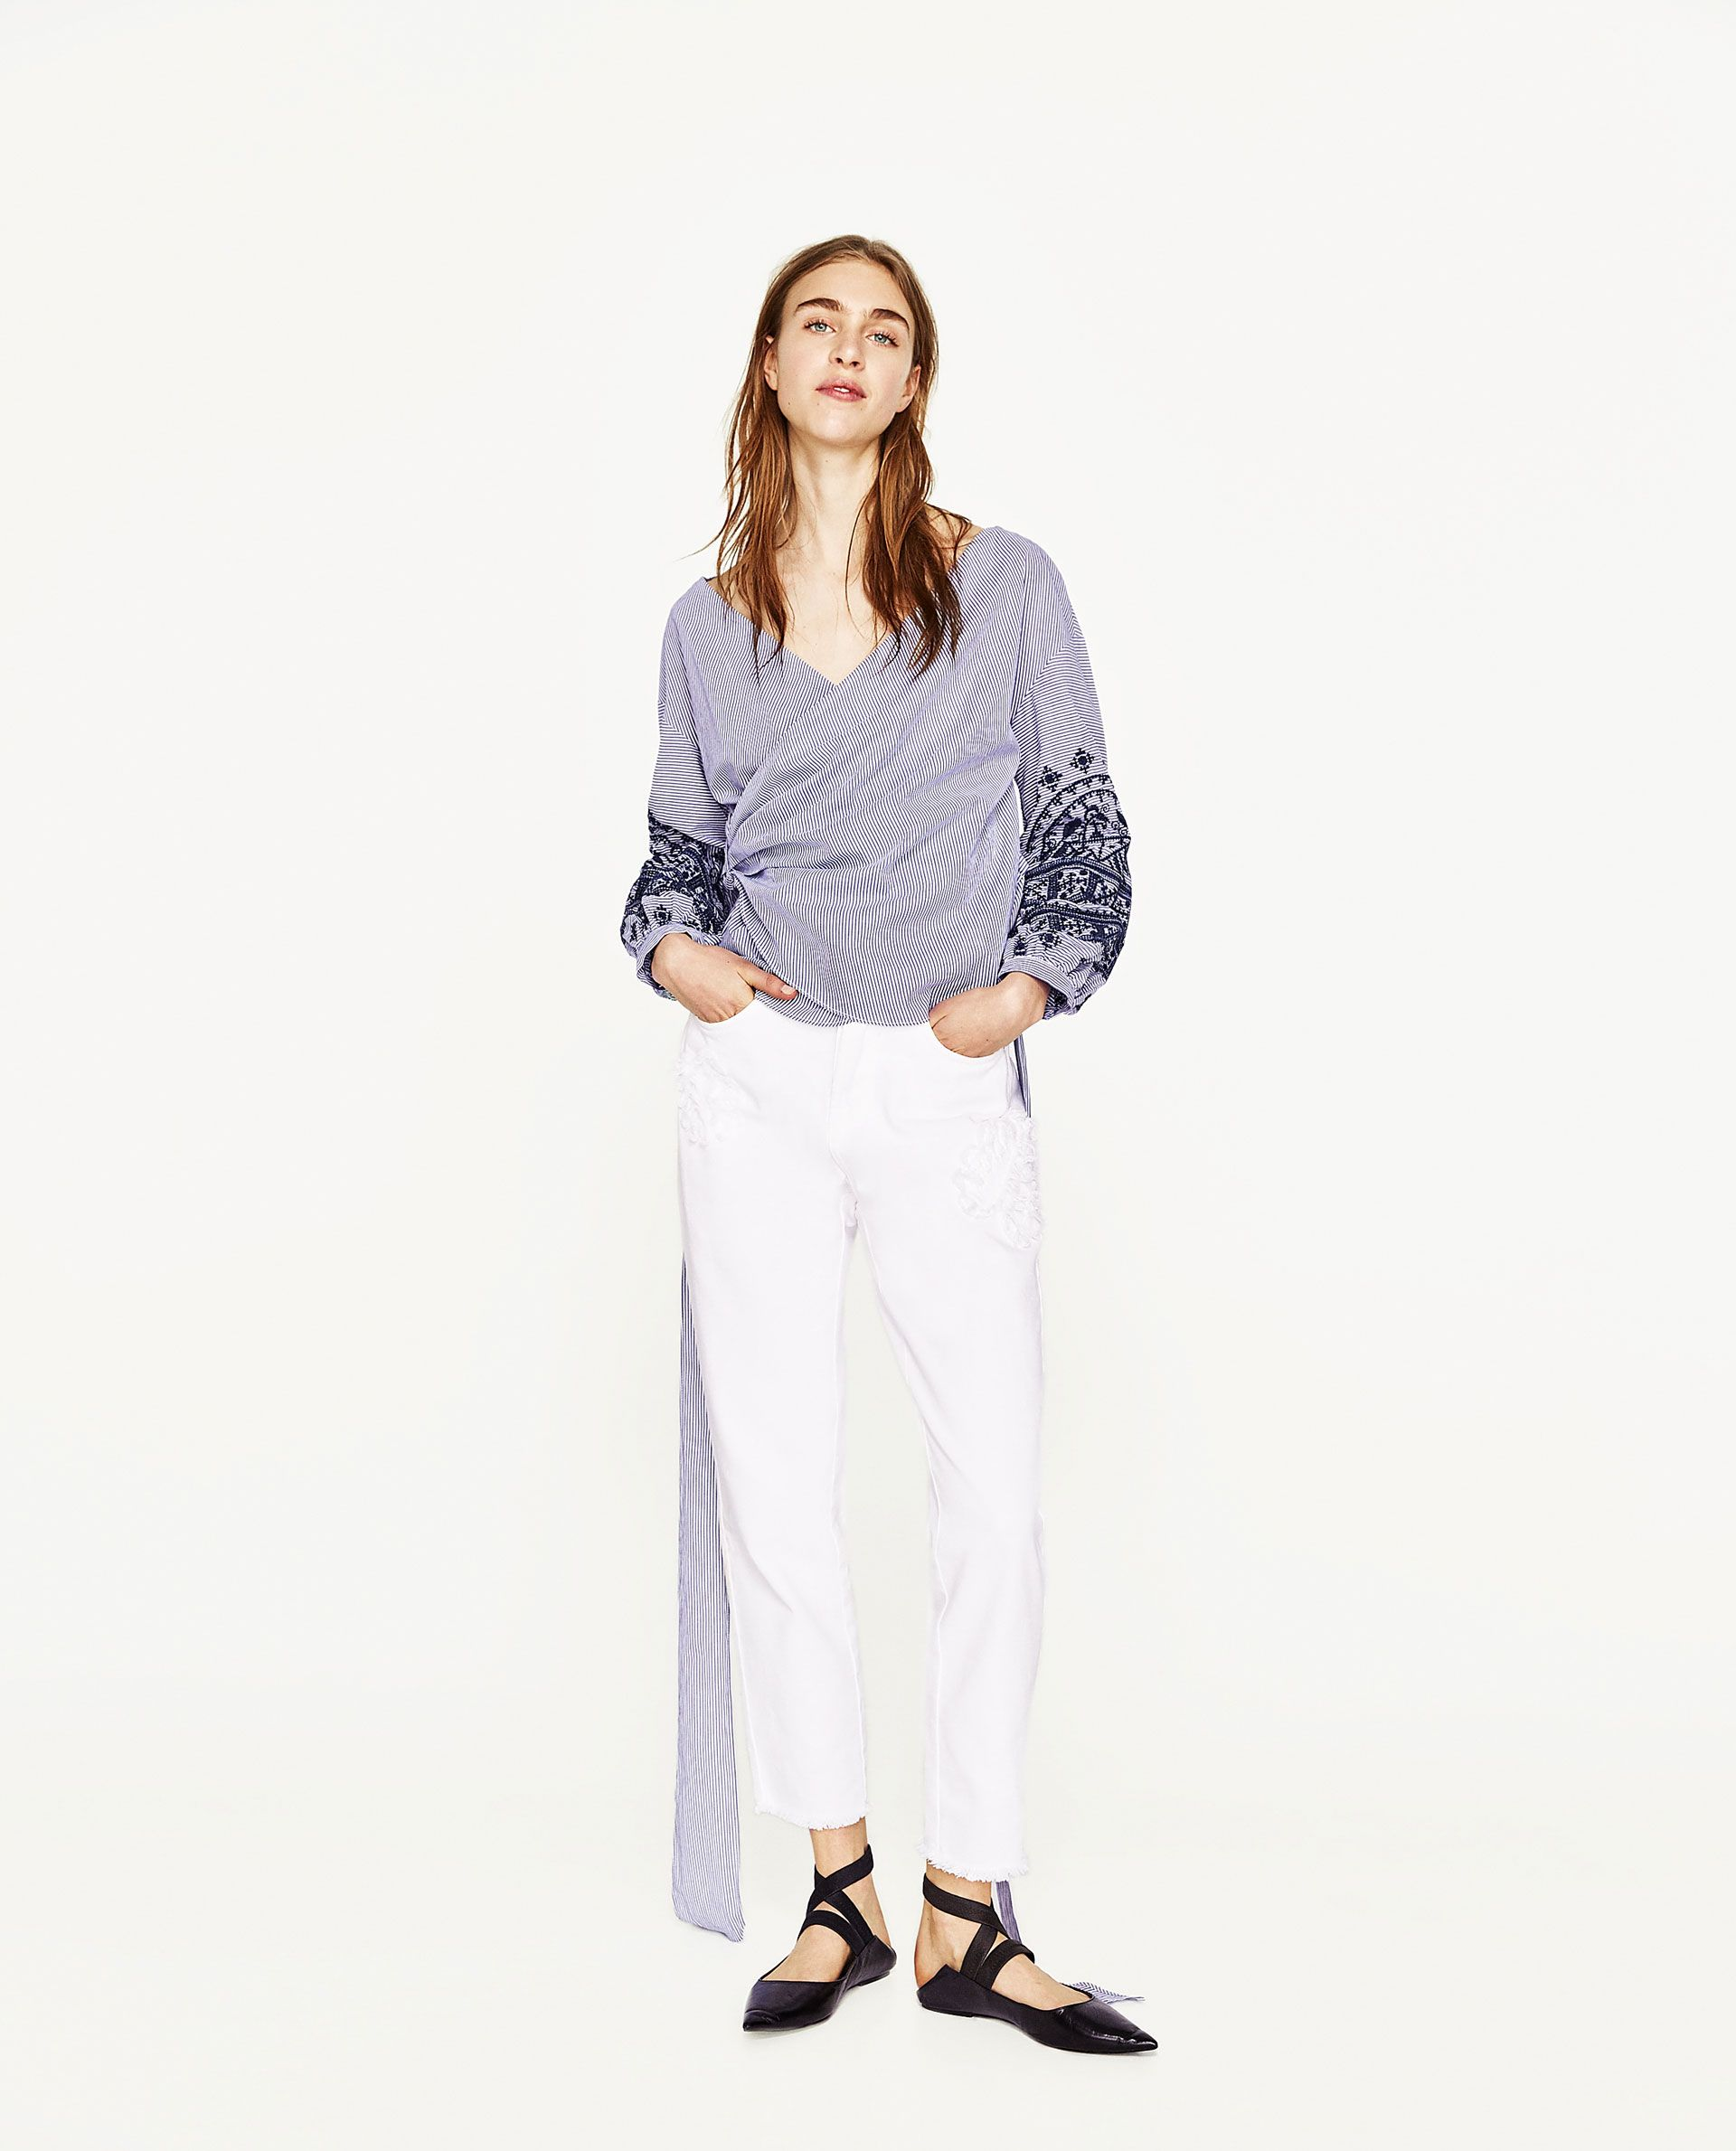 ZARA+-+WOMAN+-+CROSSOVER+STRIPED+BLOUSE+WITH+SLEEVE+EMBROIDERY